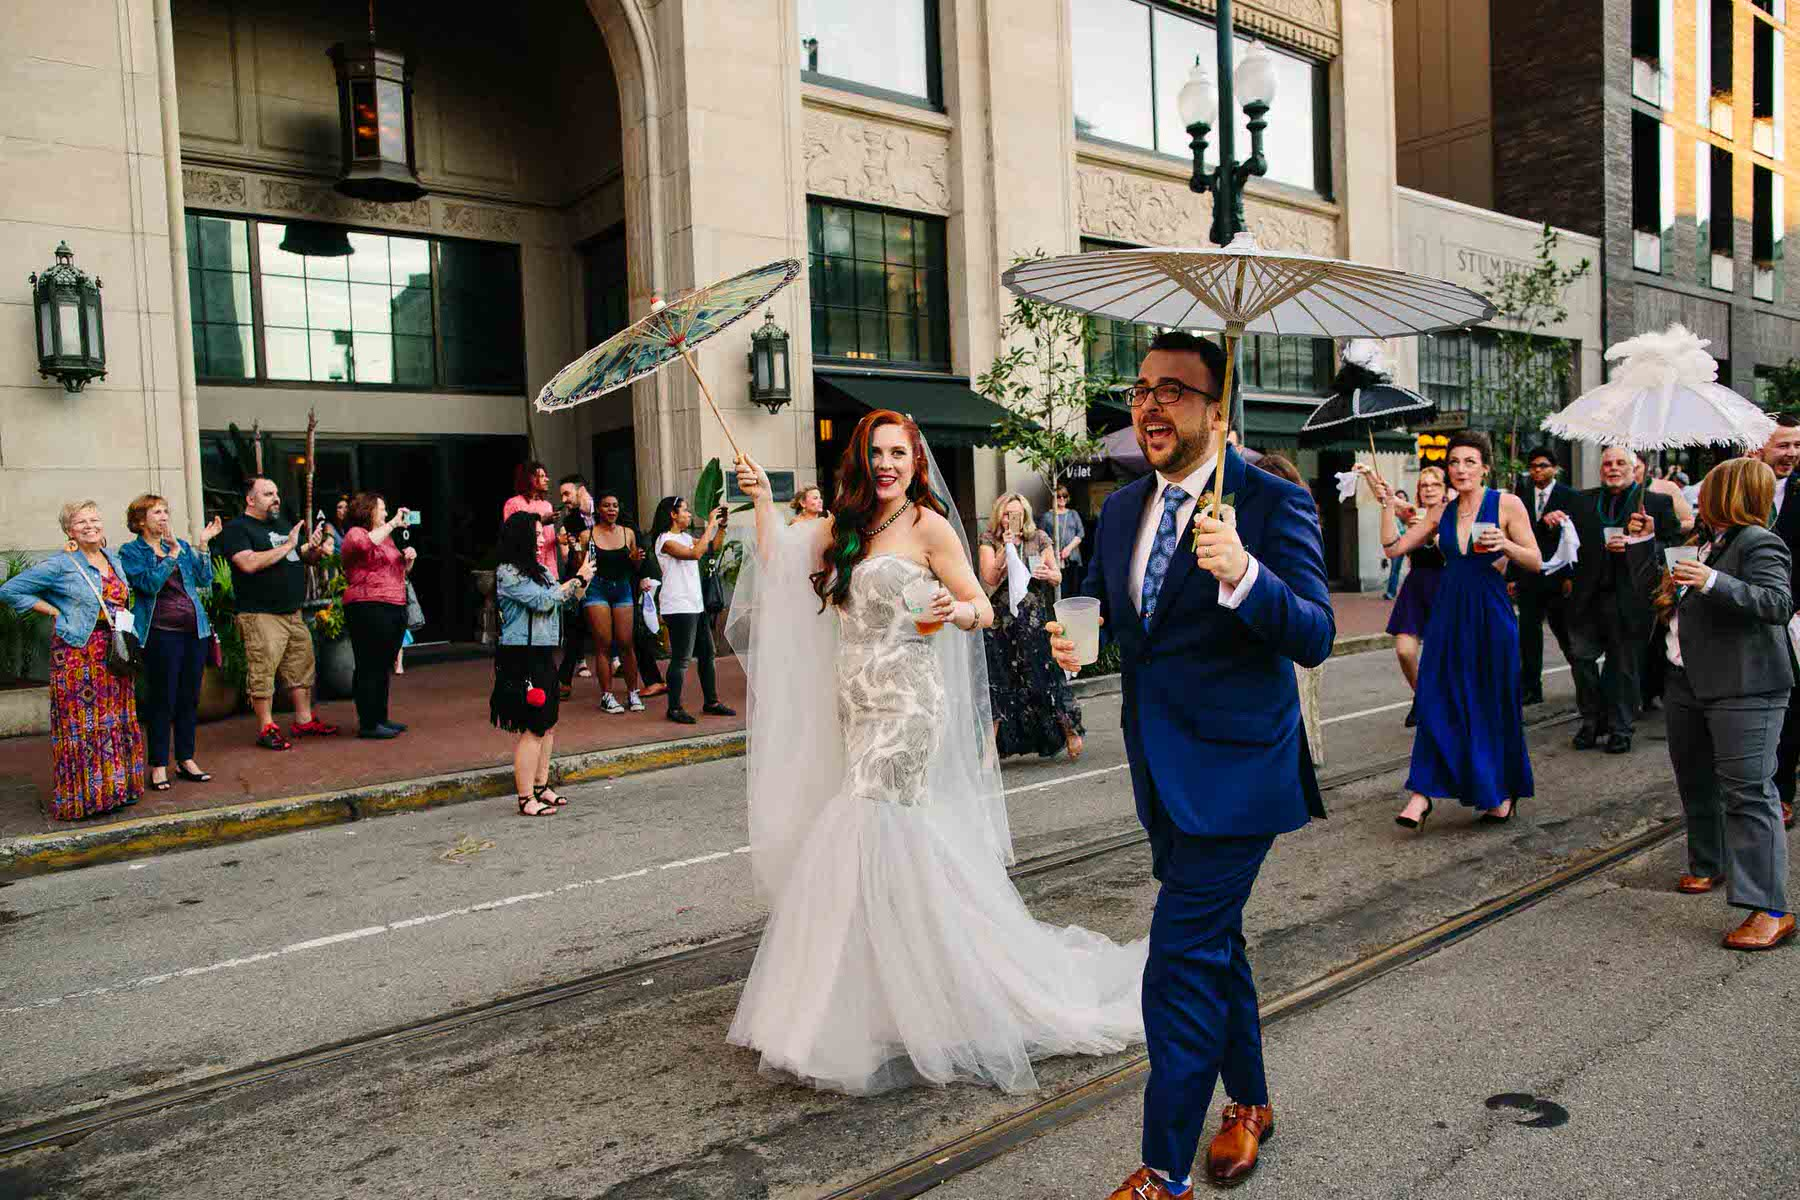 Claire Andrew S Ace Hotel New Orleans Wedding Kelly Benvenuto Photography Boston England